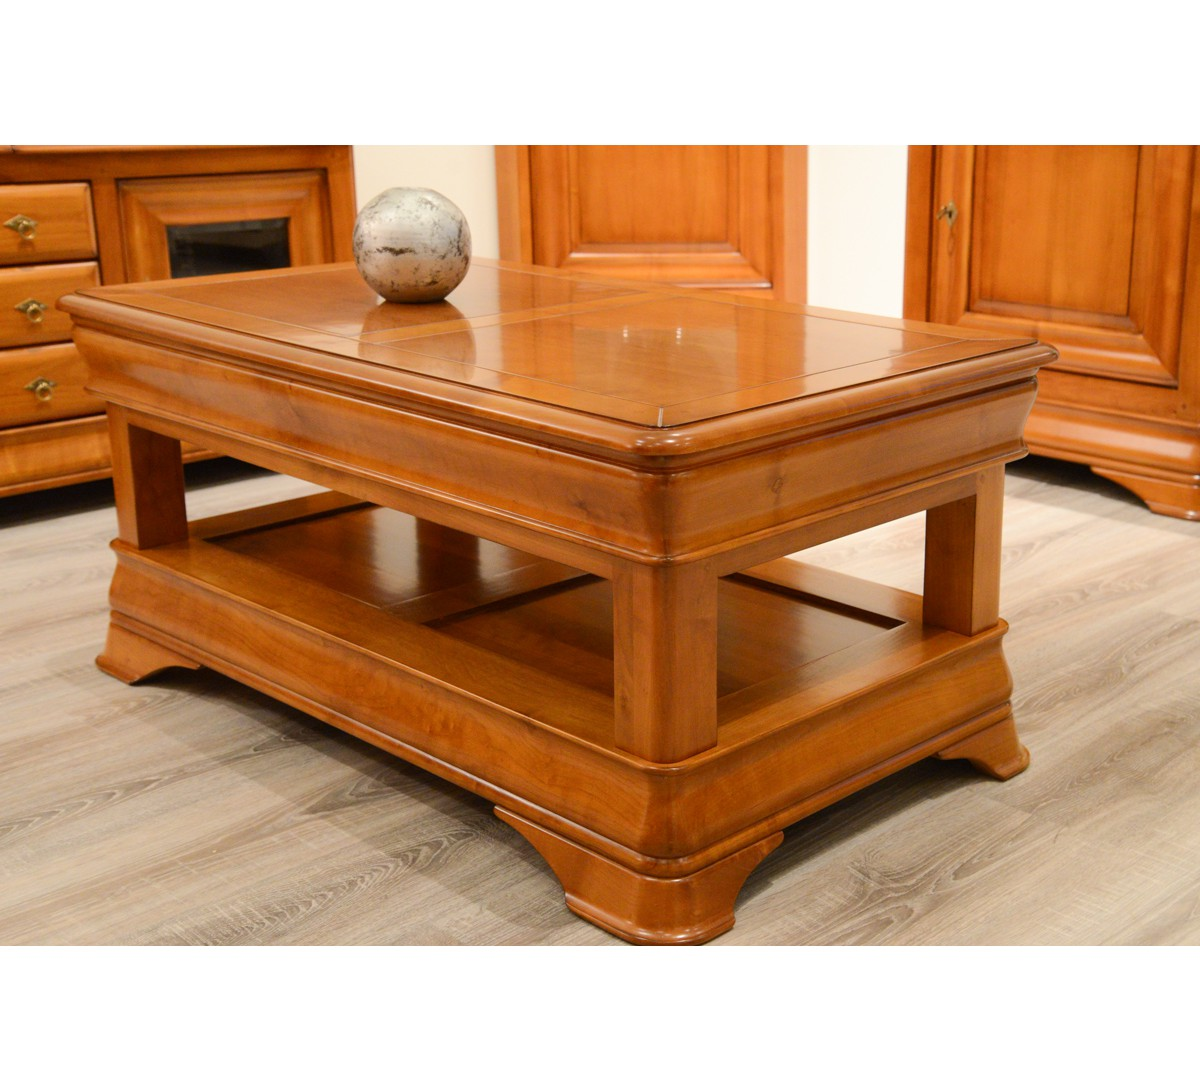 Table basse merisier massif - Table basse merisier ...